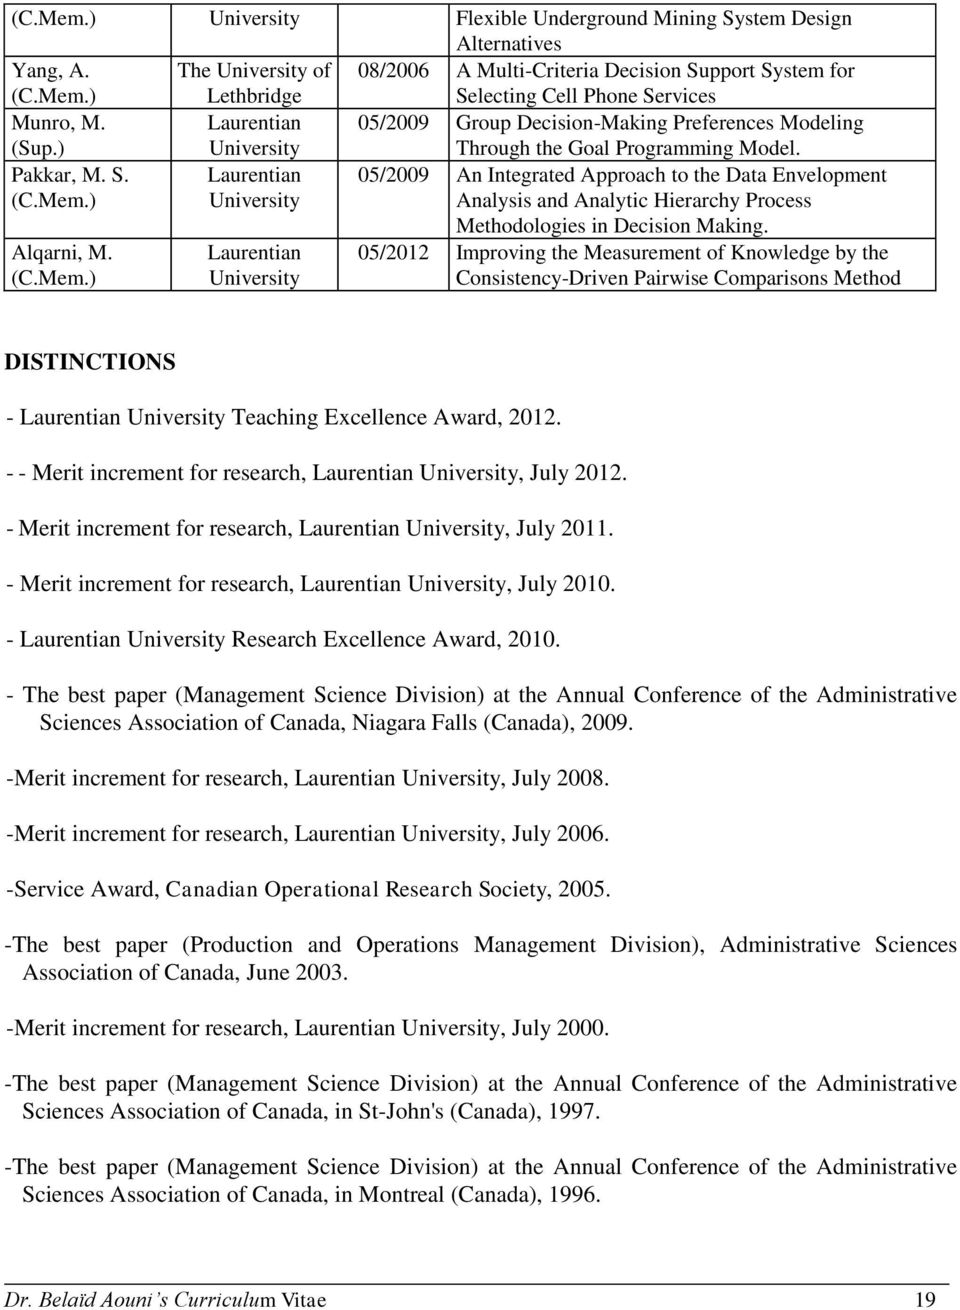 ) Laurentian University 05/2009 An Integrated Approach to the Data Envelopment Analysis and Analytic Hierarchy Process Alqarni, M. (C.Mem.) Laurentian University Methodologies in Decision Making.